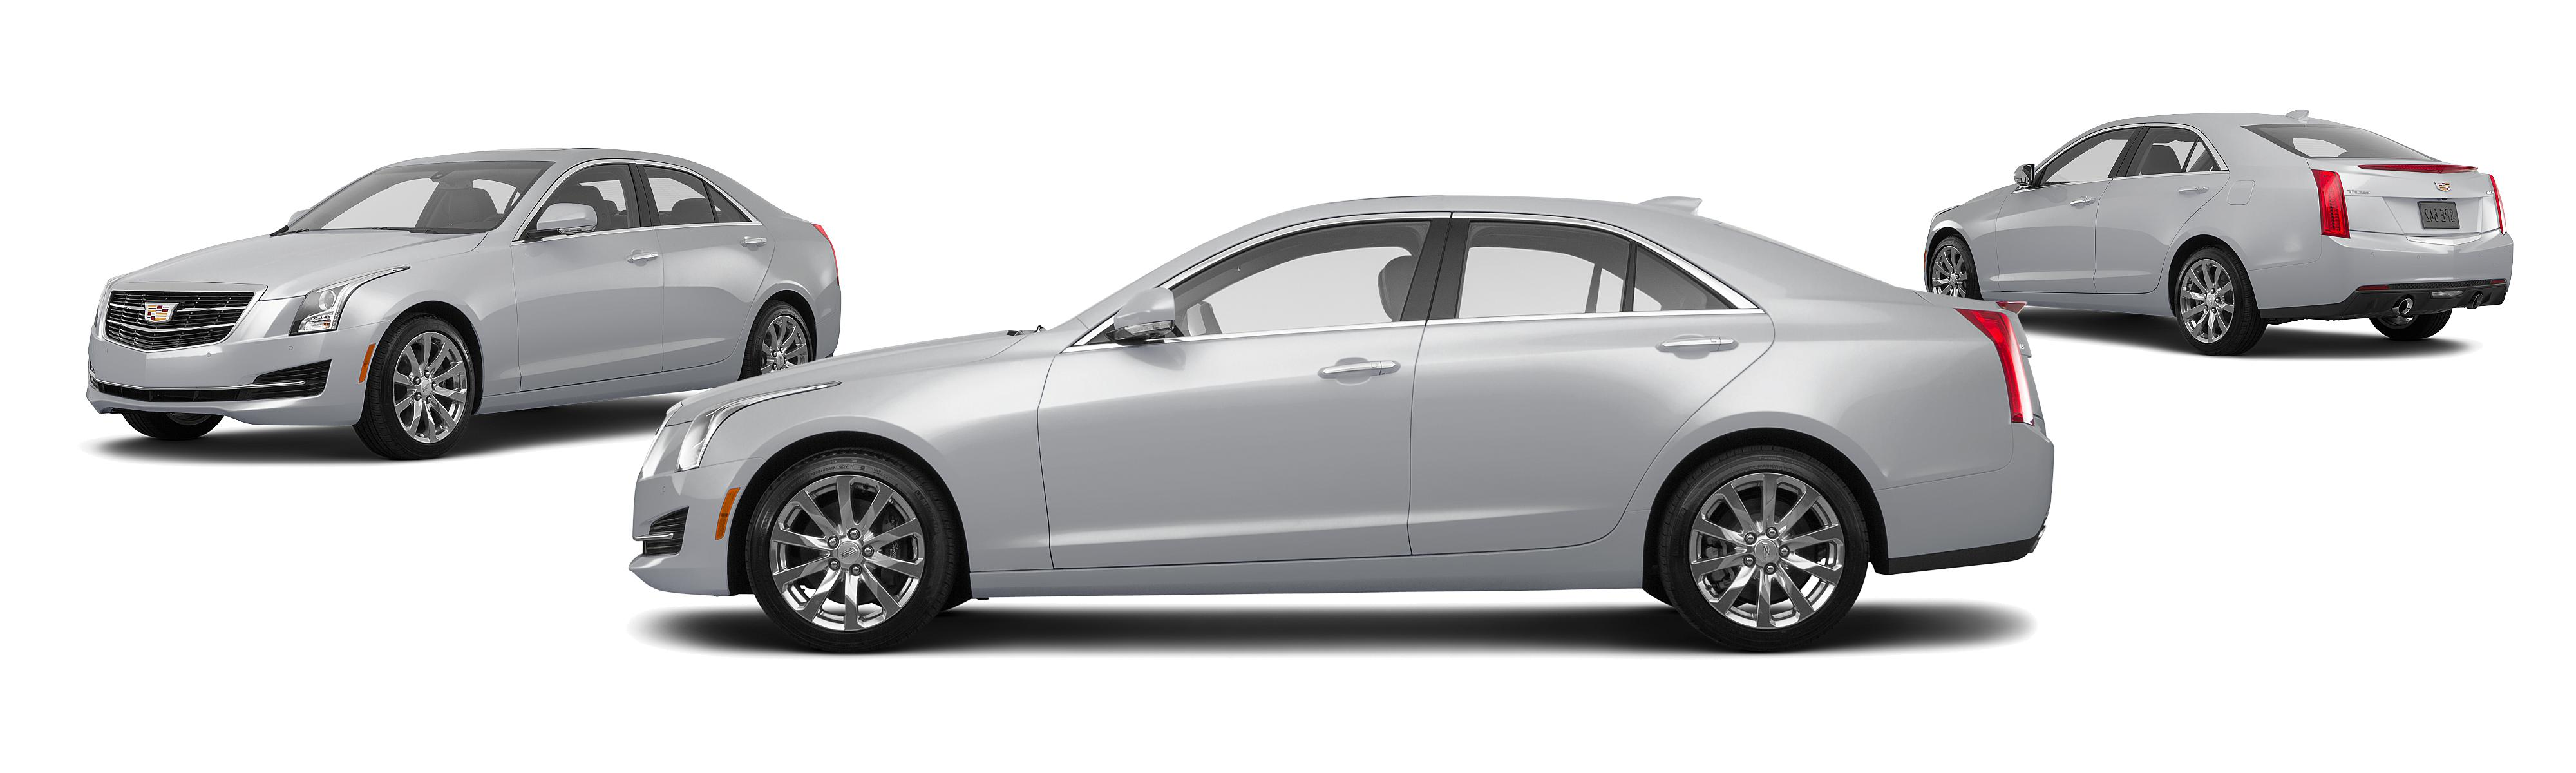 Cadillac Ats Awd Premium Luxury Sedan Research